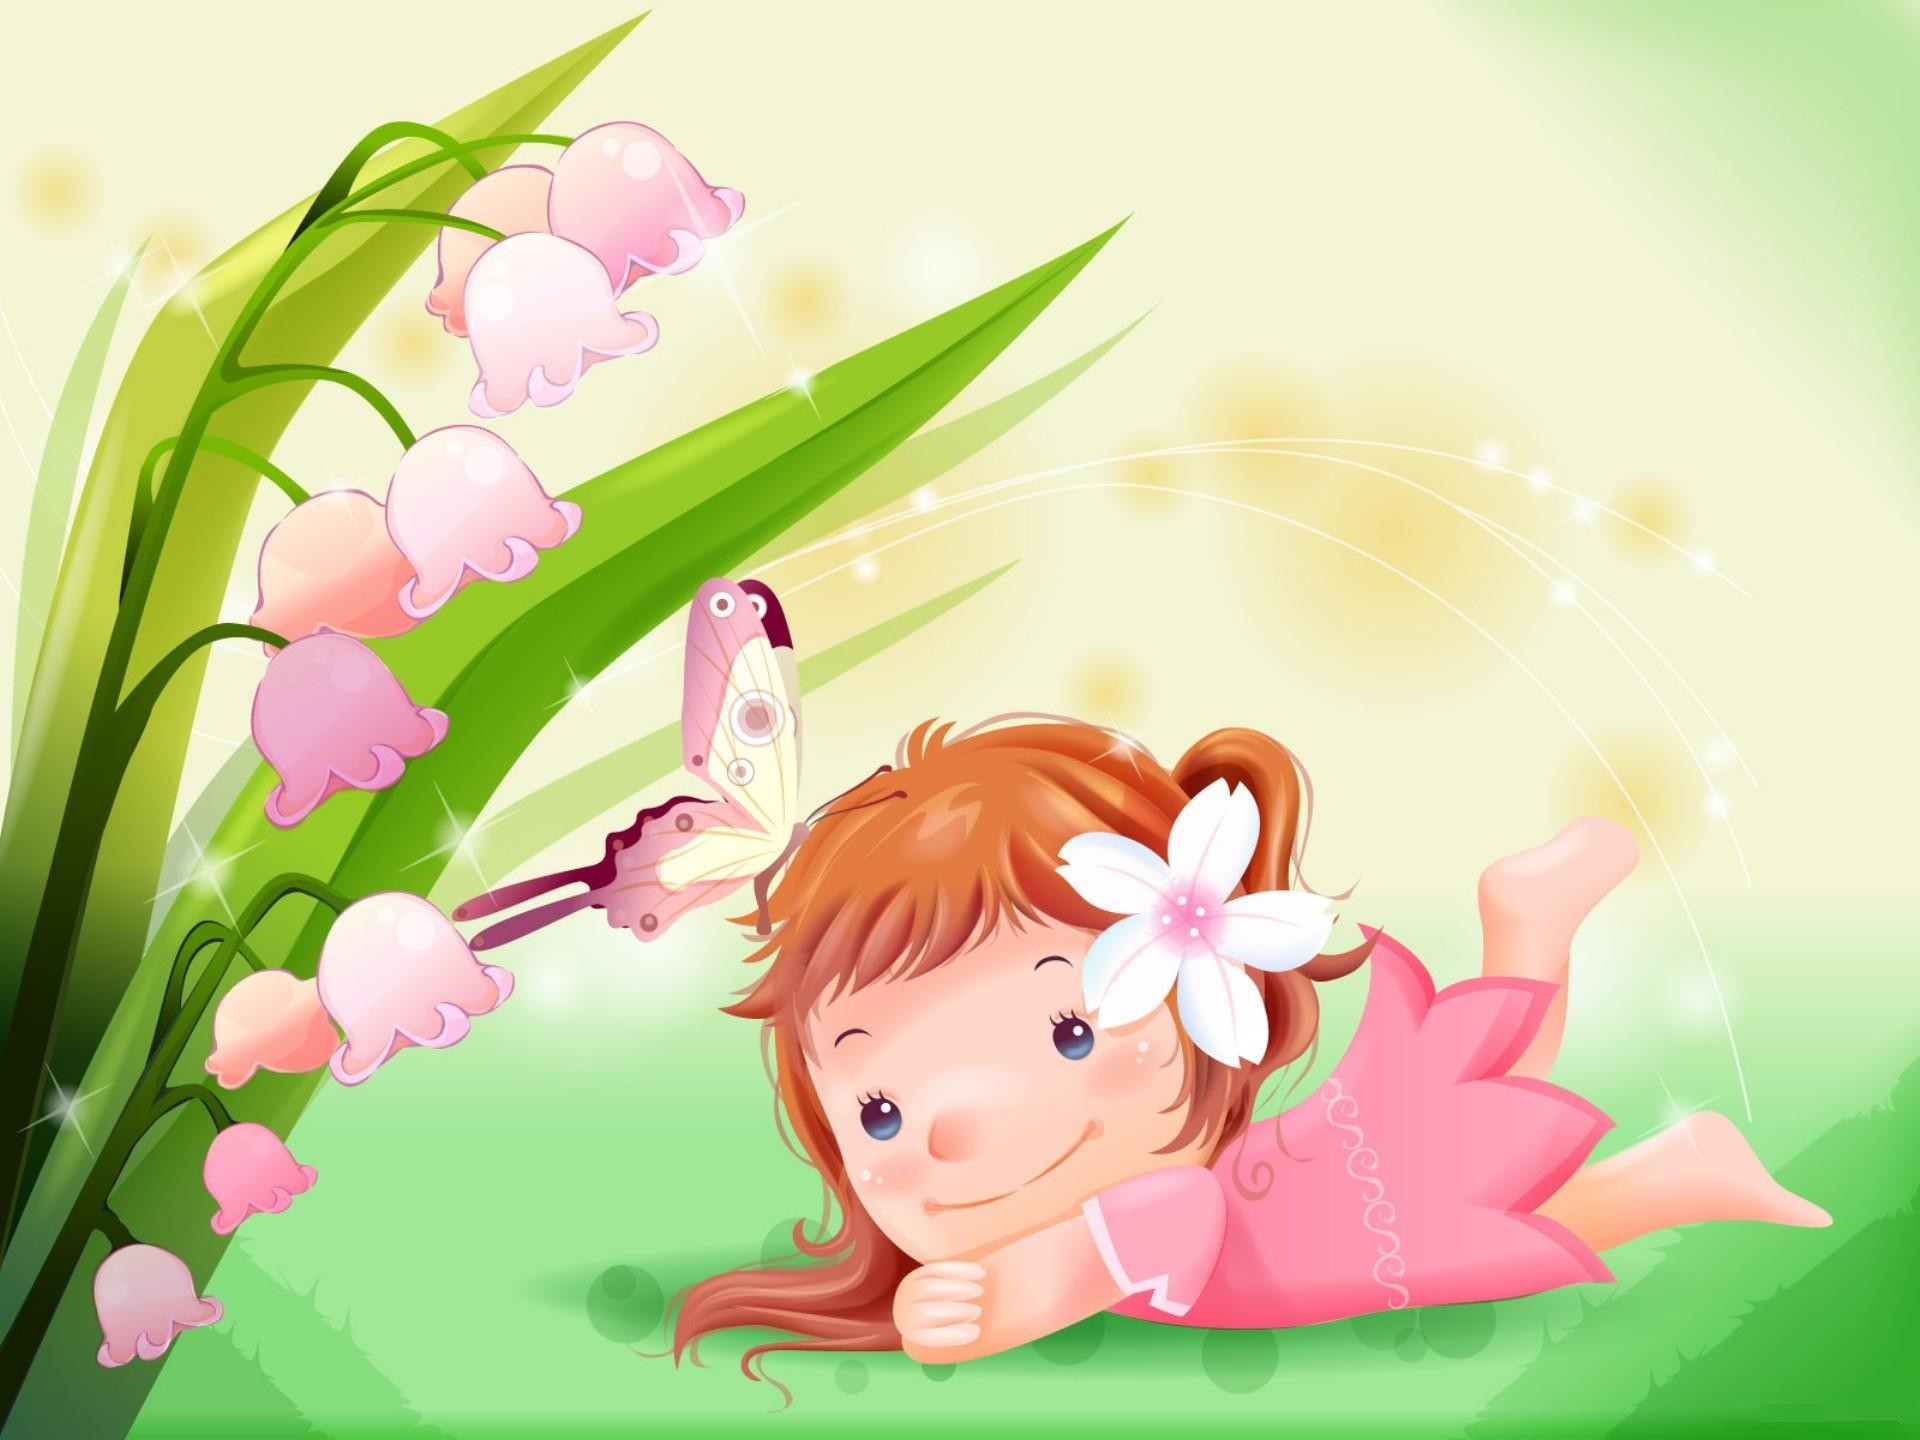 1920x1440 Cute Cartoon Wallpapers - Wallpaper Cave